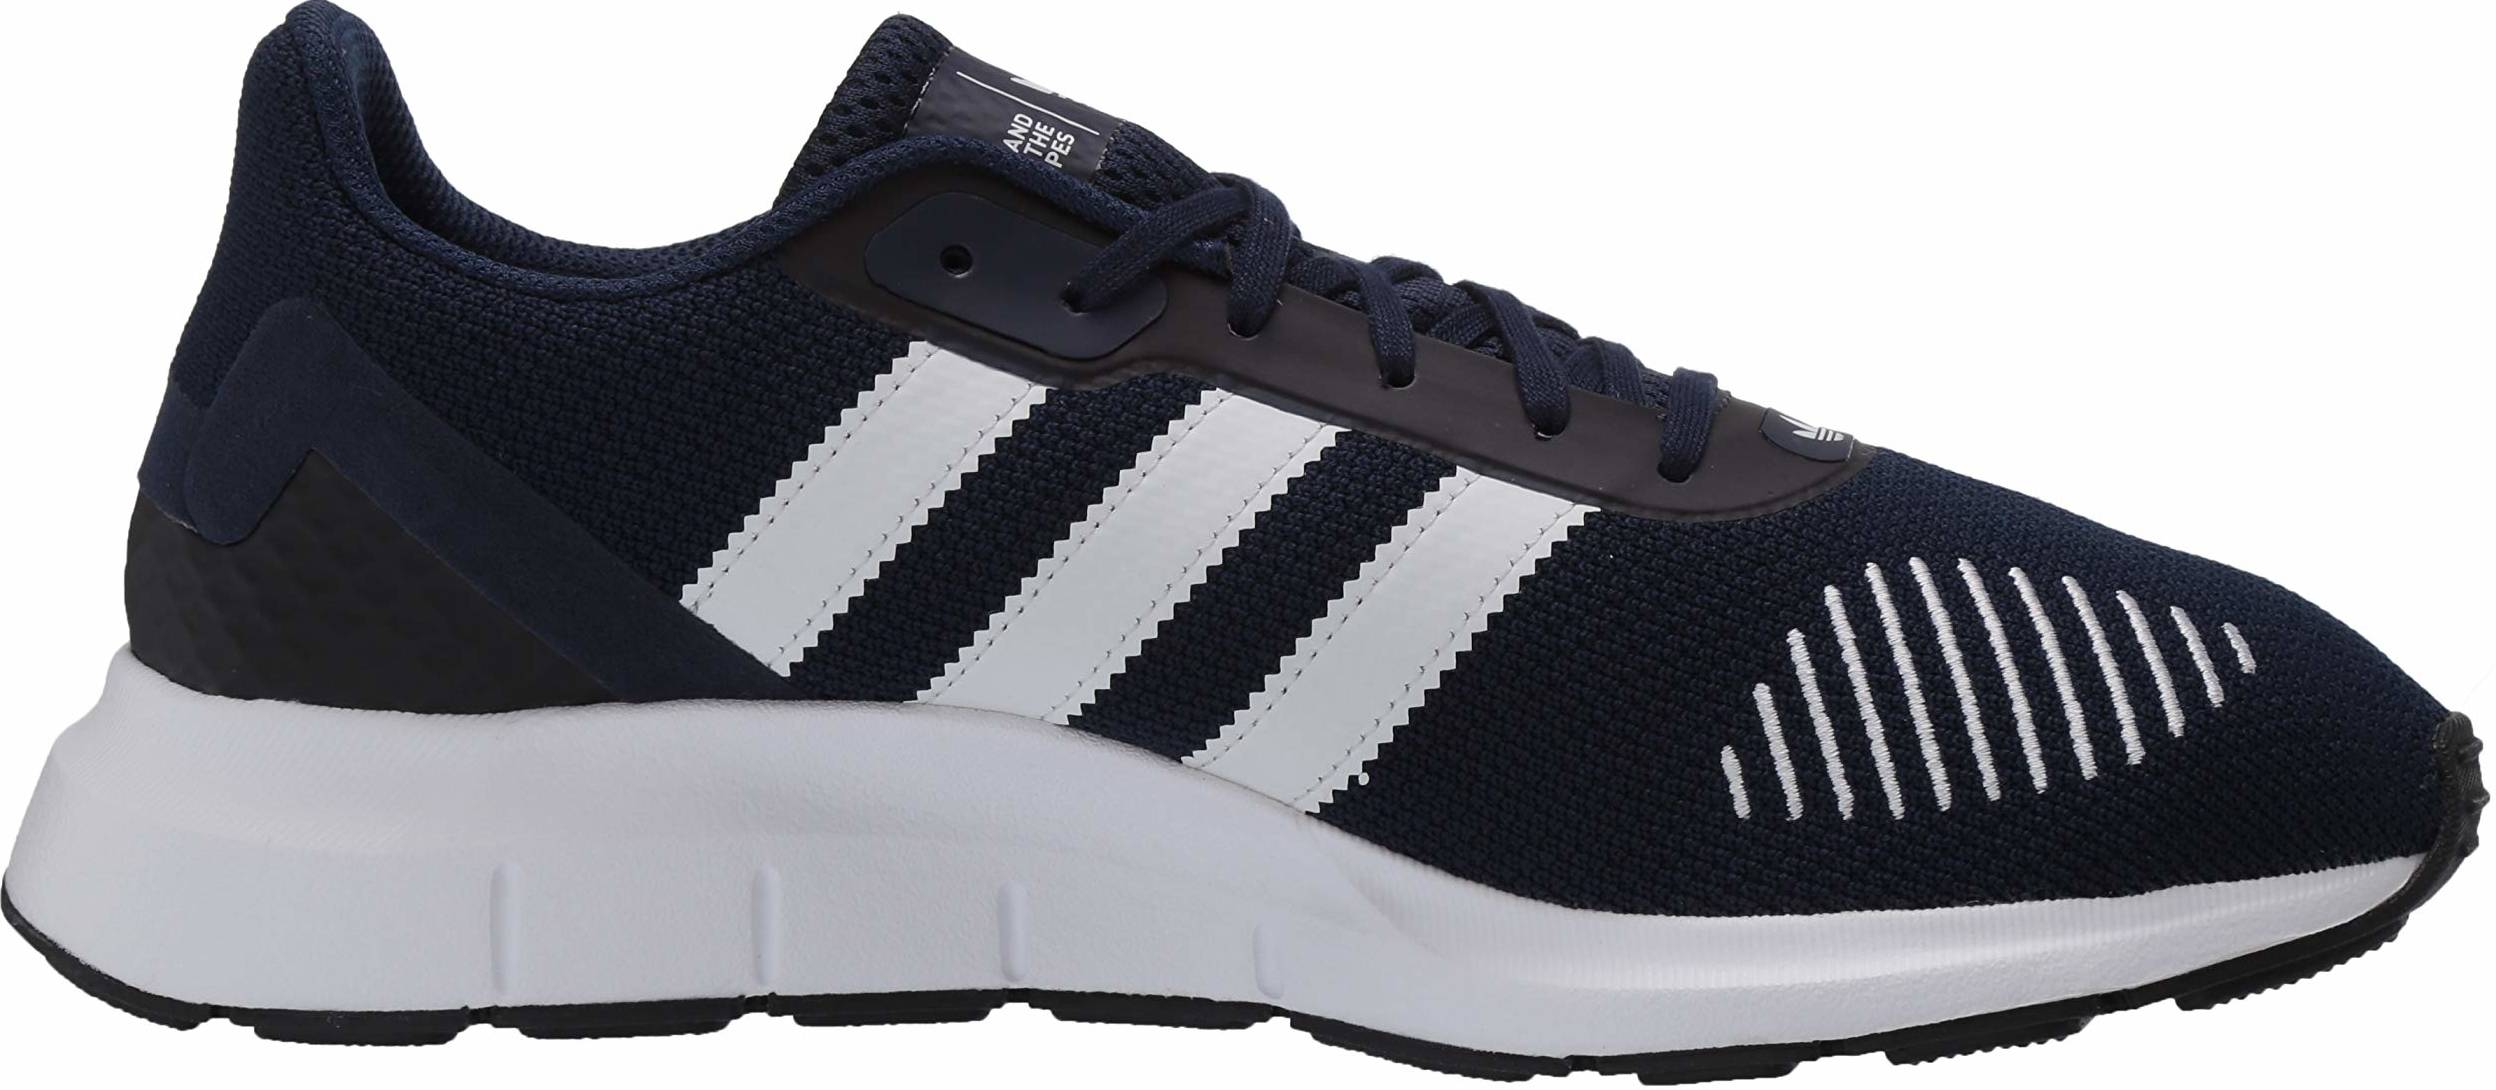 Repegar nombre A rayas  Adidas Swift Run RF sneakers in black + blue (only $31) | RunRepeat